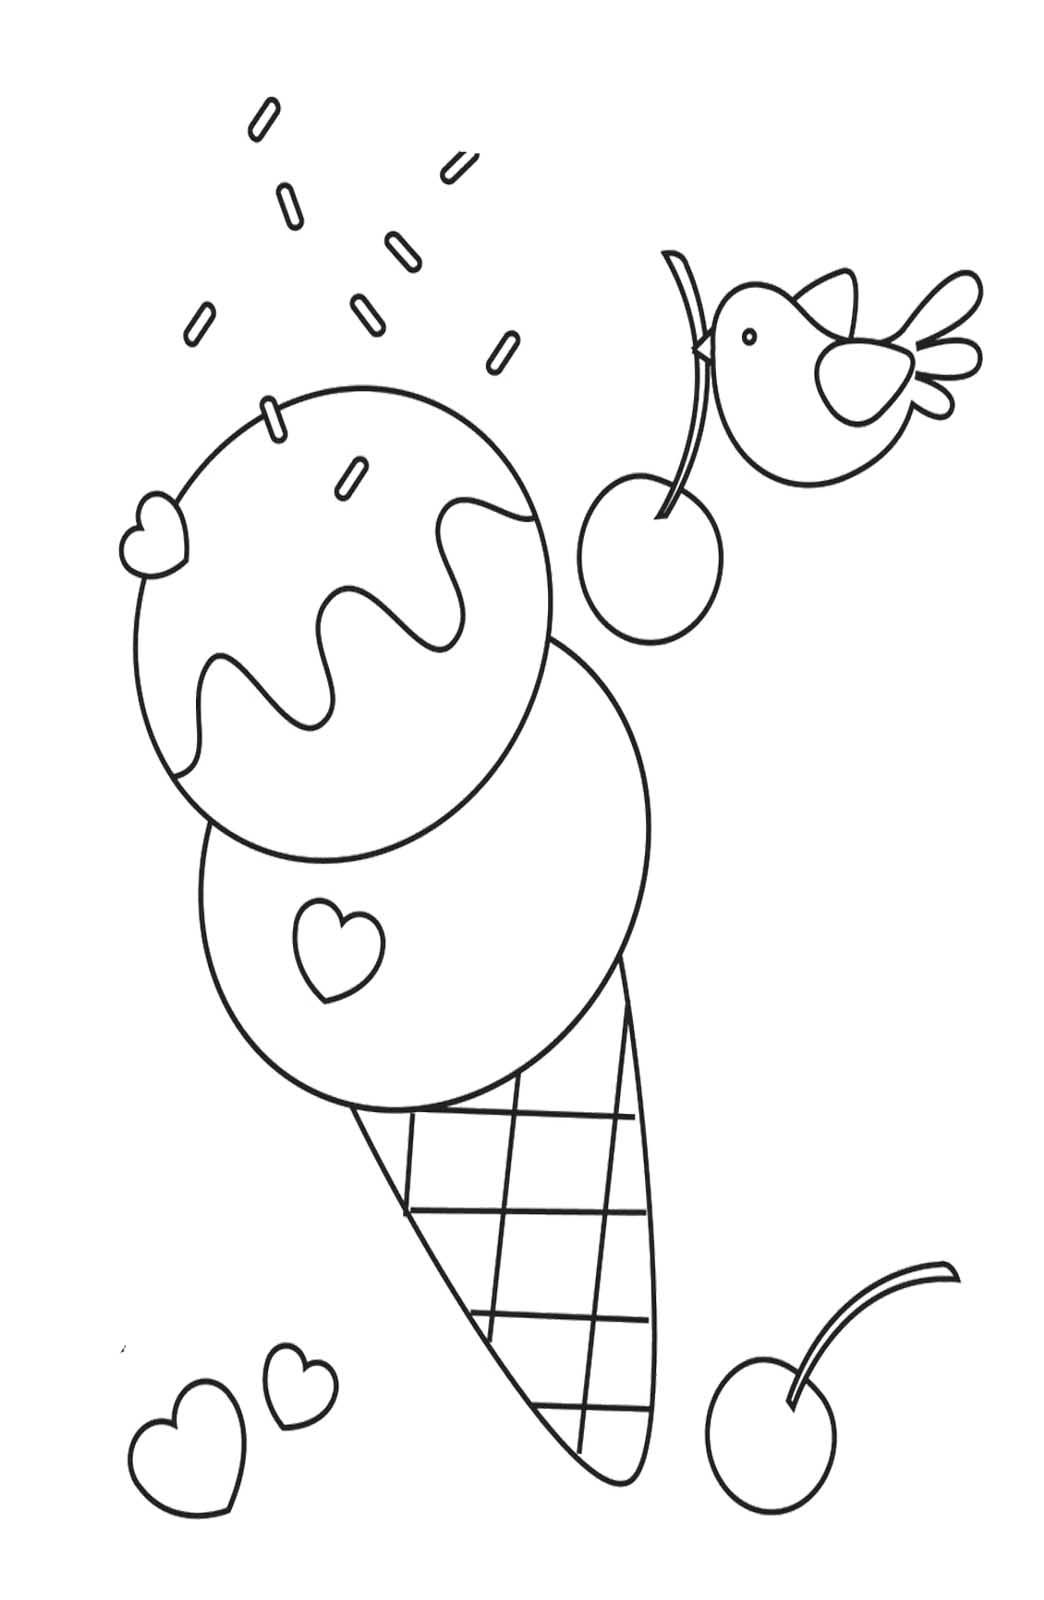 Delicious Sweet Ice Cream Coloring Pages | ice cream social | Pinterest